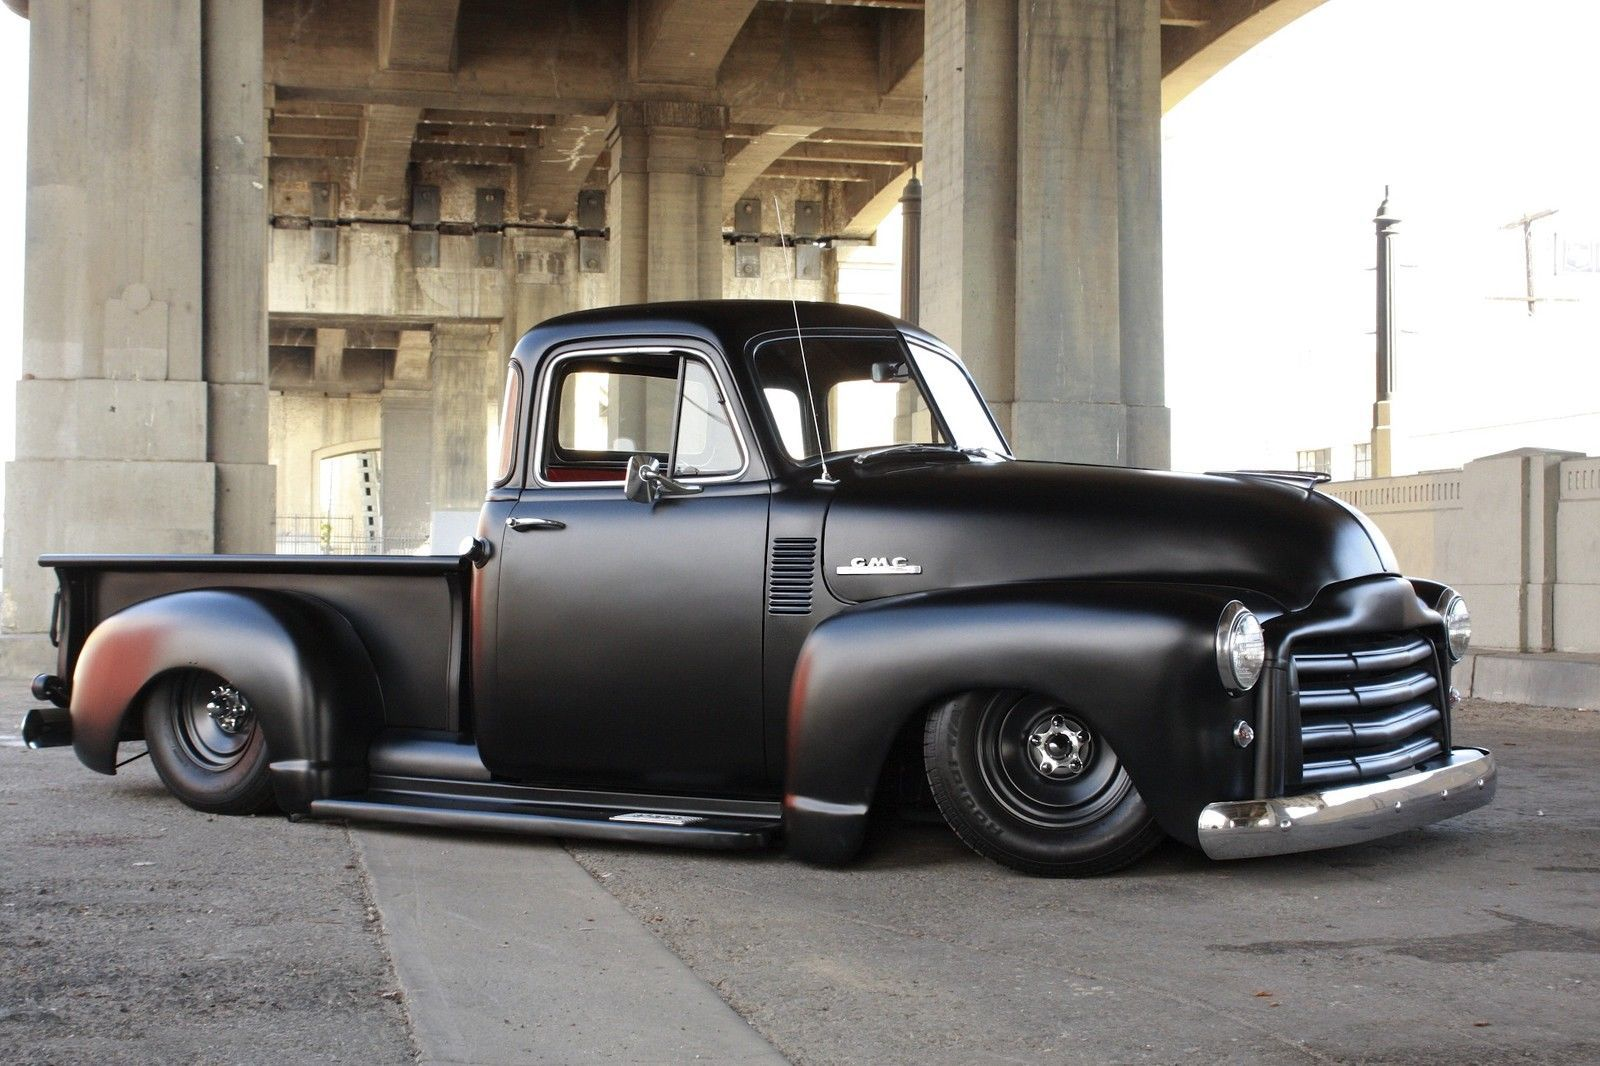 1953 Gmc Chevrolet Pickup Hot Rod Rat Rod Blacked Out Gmc Trucks